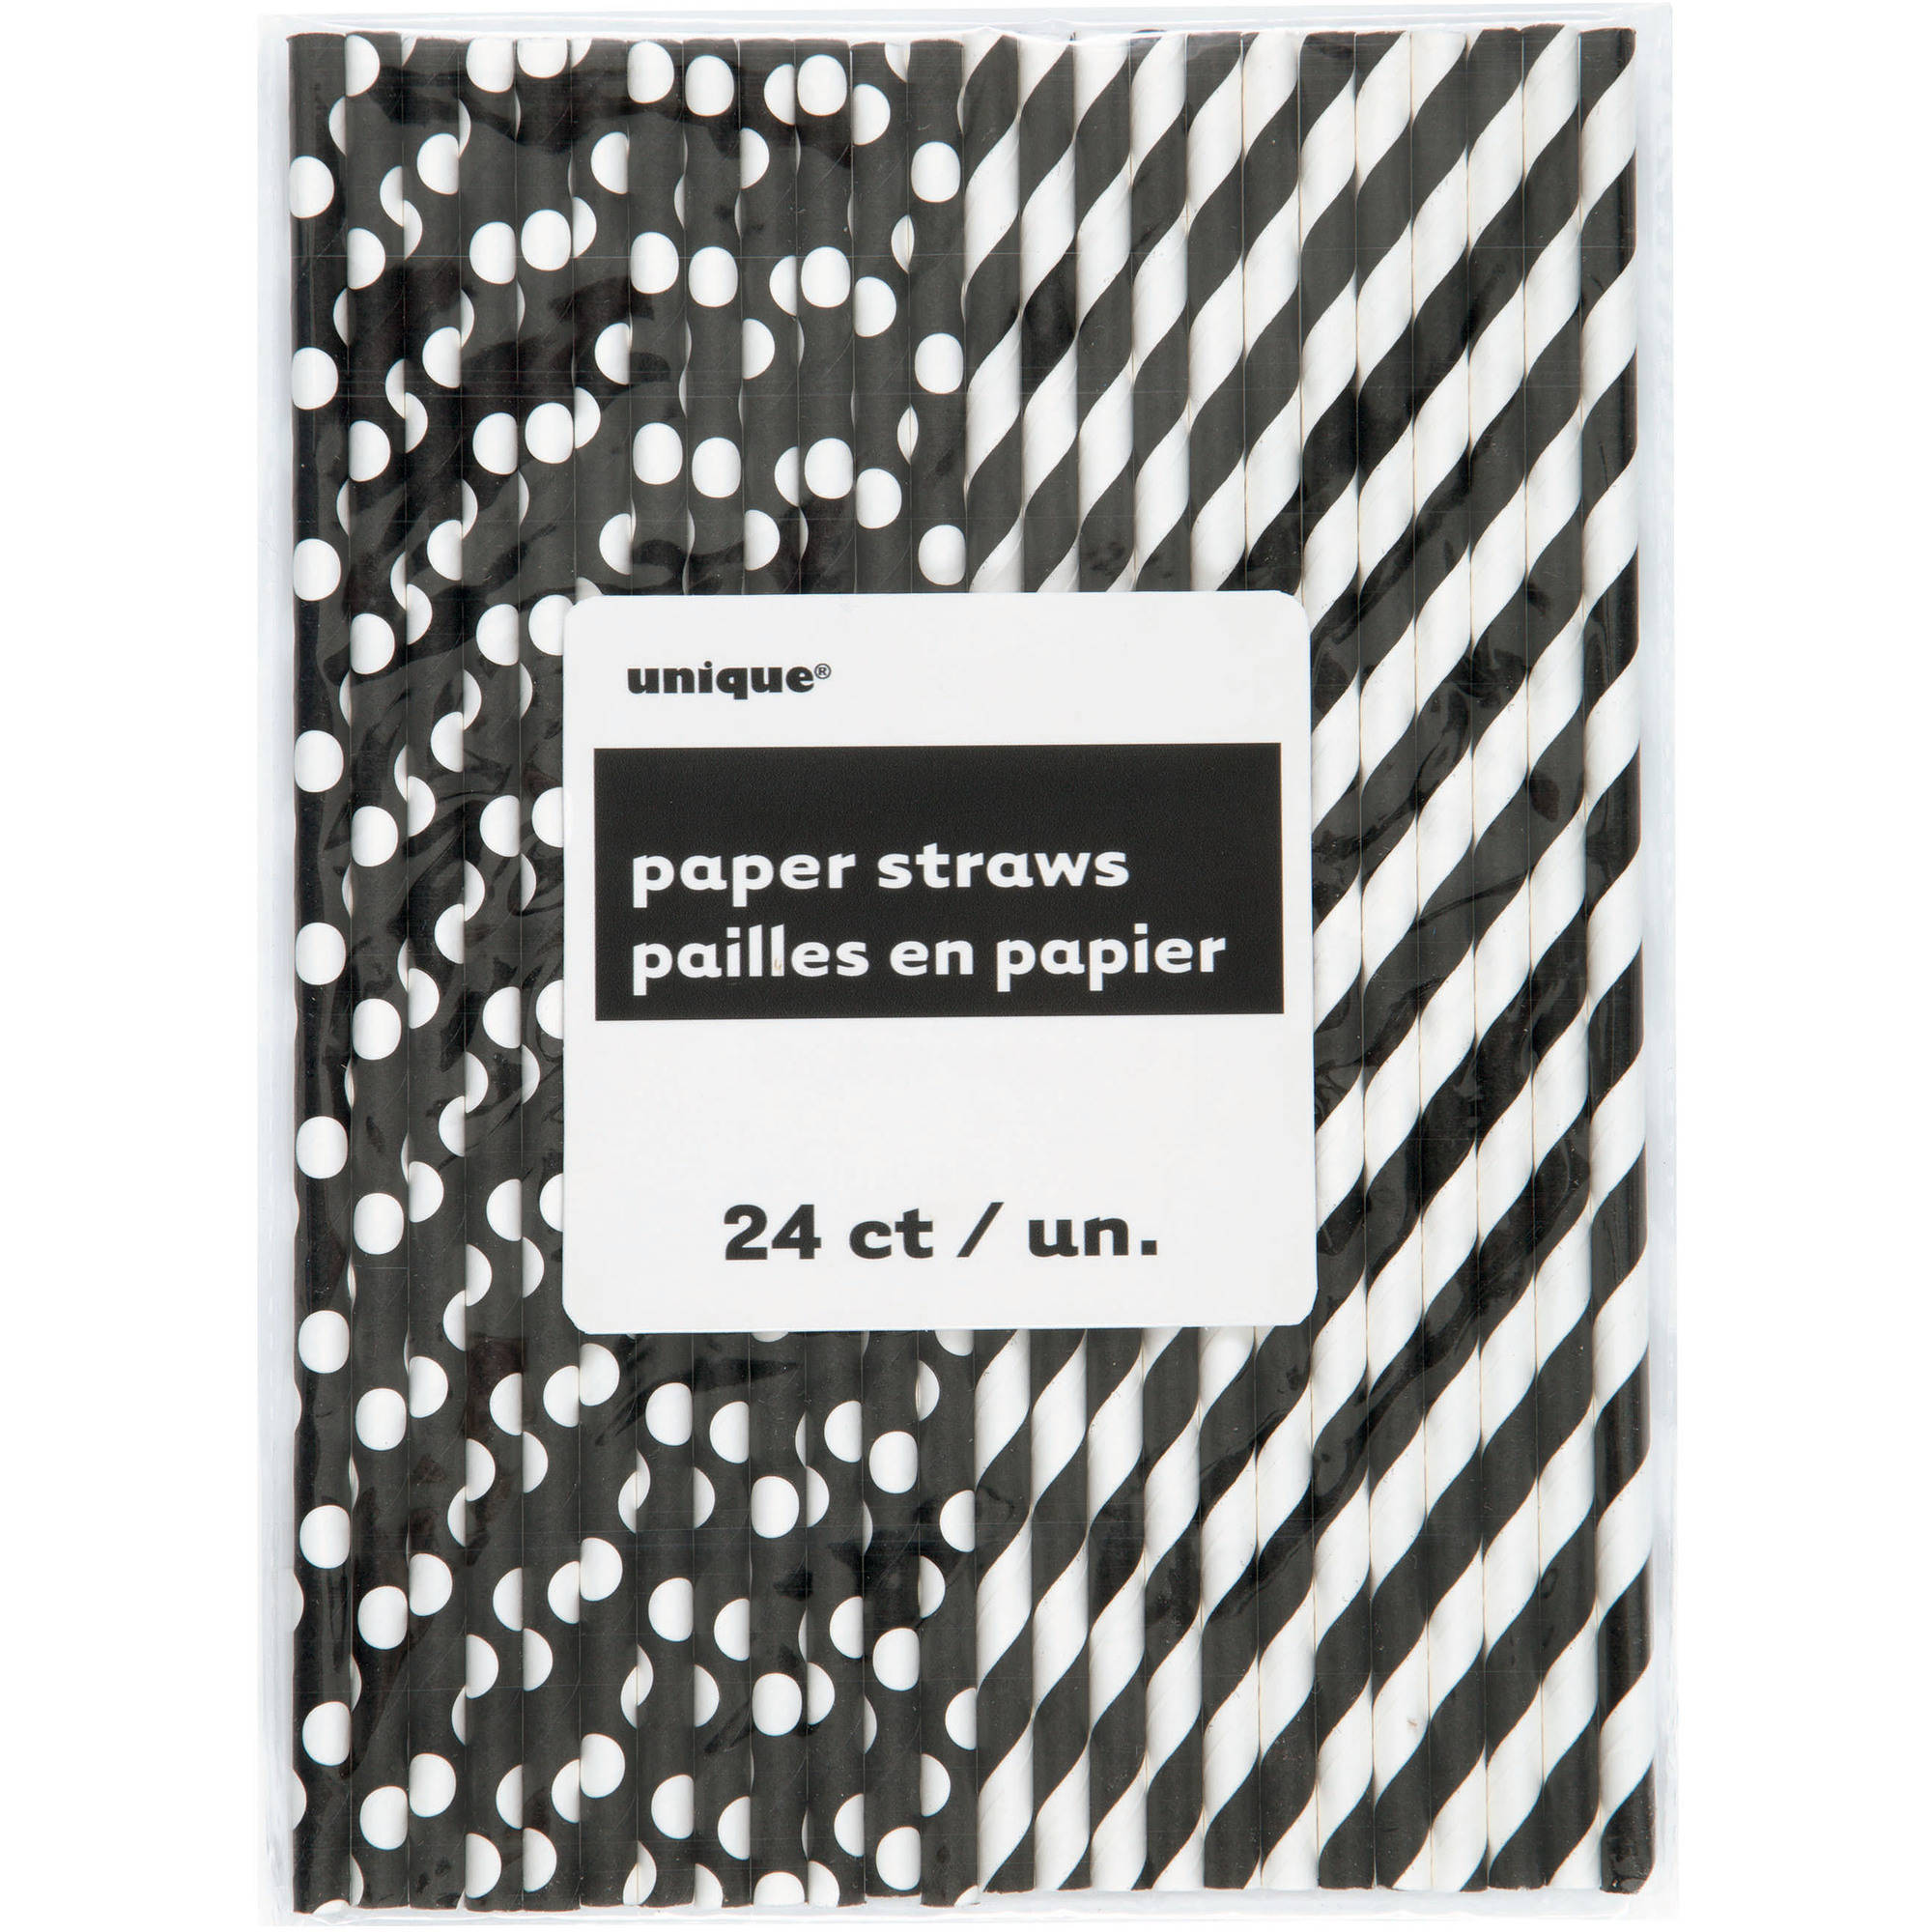 (2 Pack) Polka Dot & Striped Paper Straws, 8.25 in, Black, 24ct